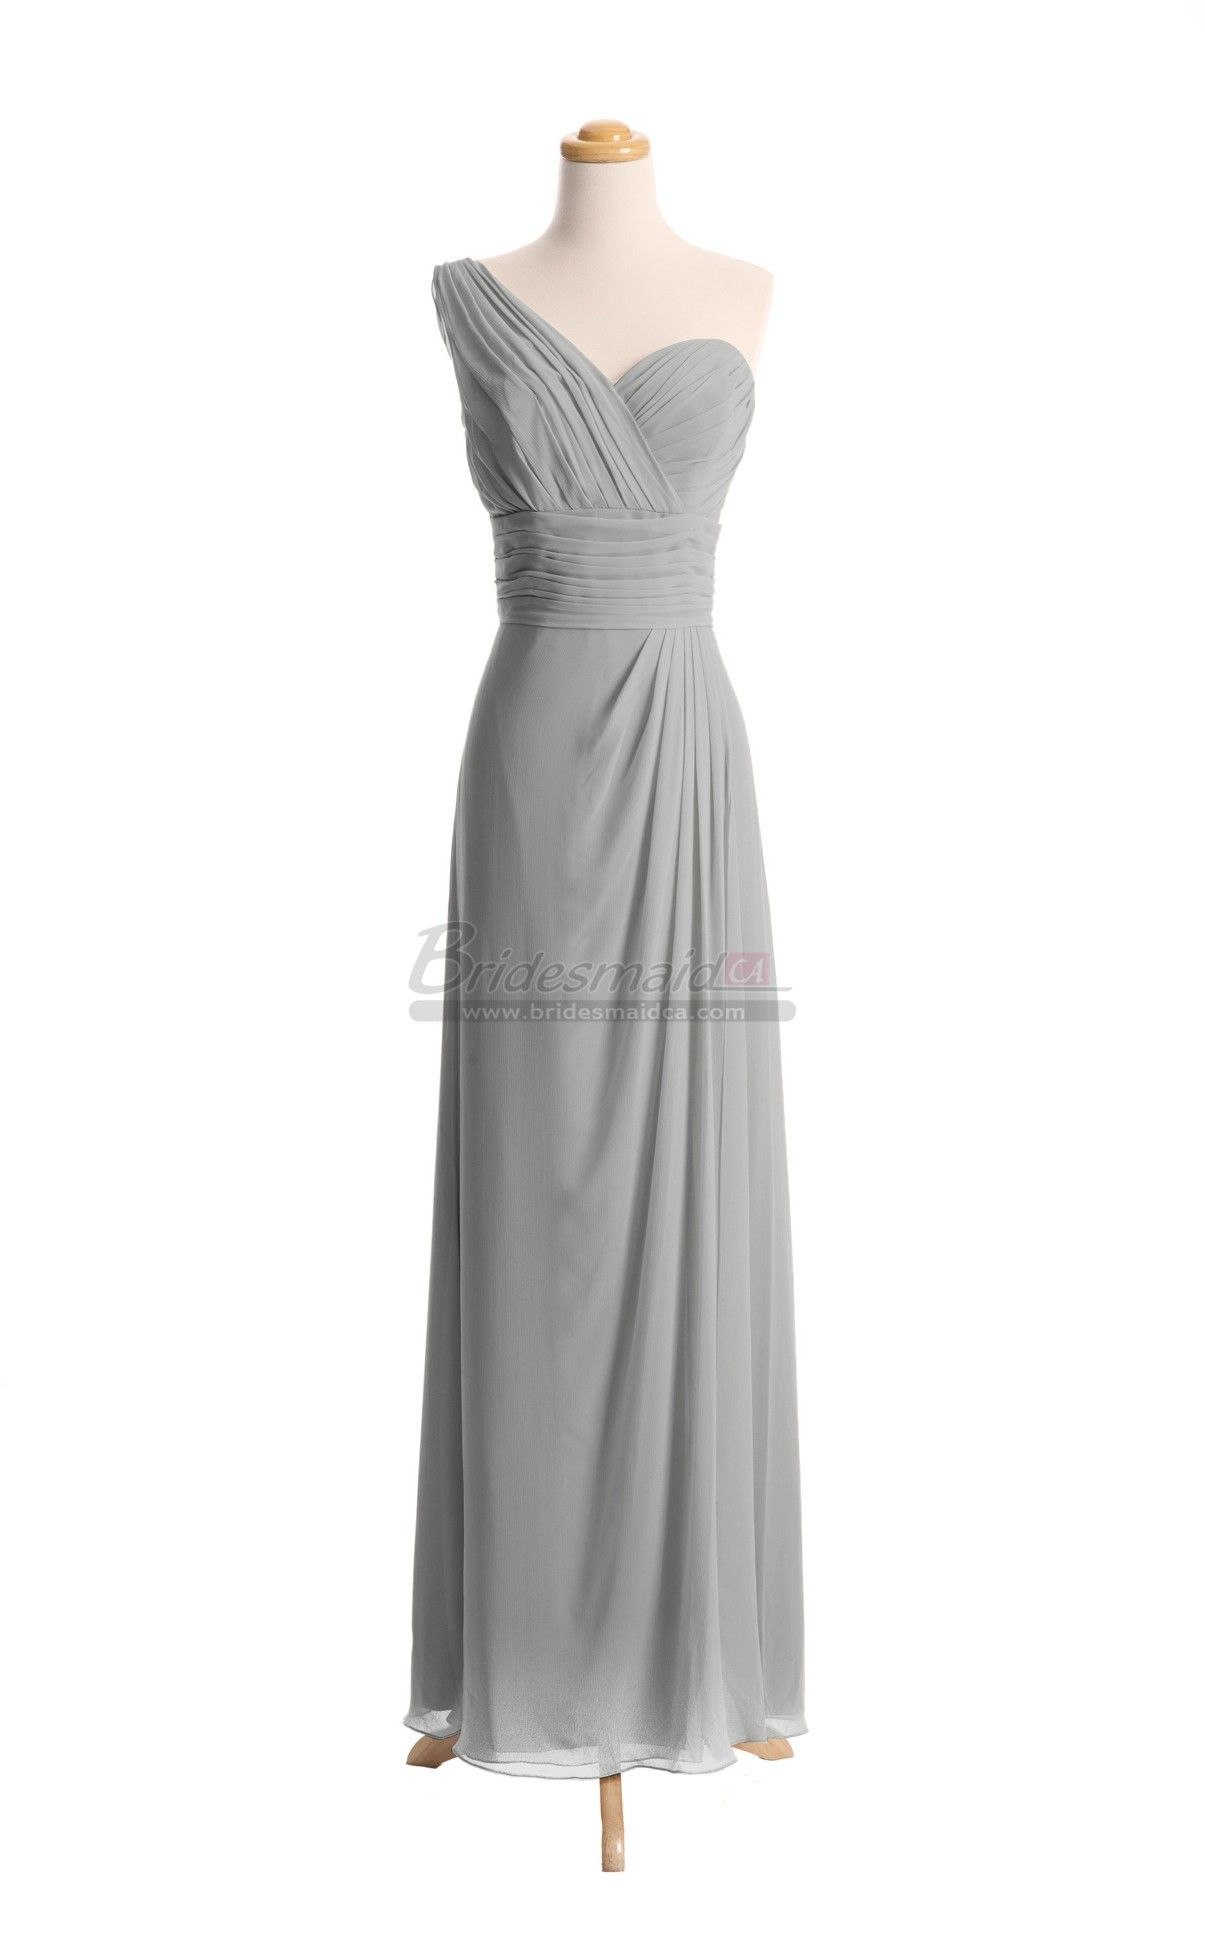 One shoulder chiffon long silver bridesmaid dress in grey dresses one shoulder chiffon long silver bridesmaid dress in grey dresses bds ca077 bridesmaidca ombrellifo Images